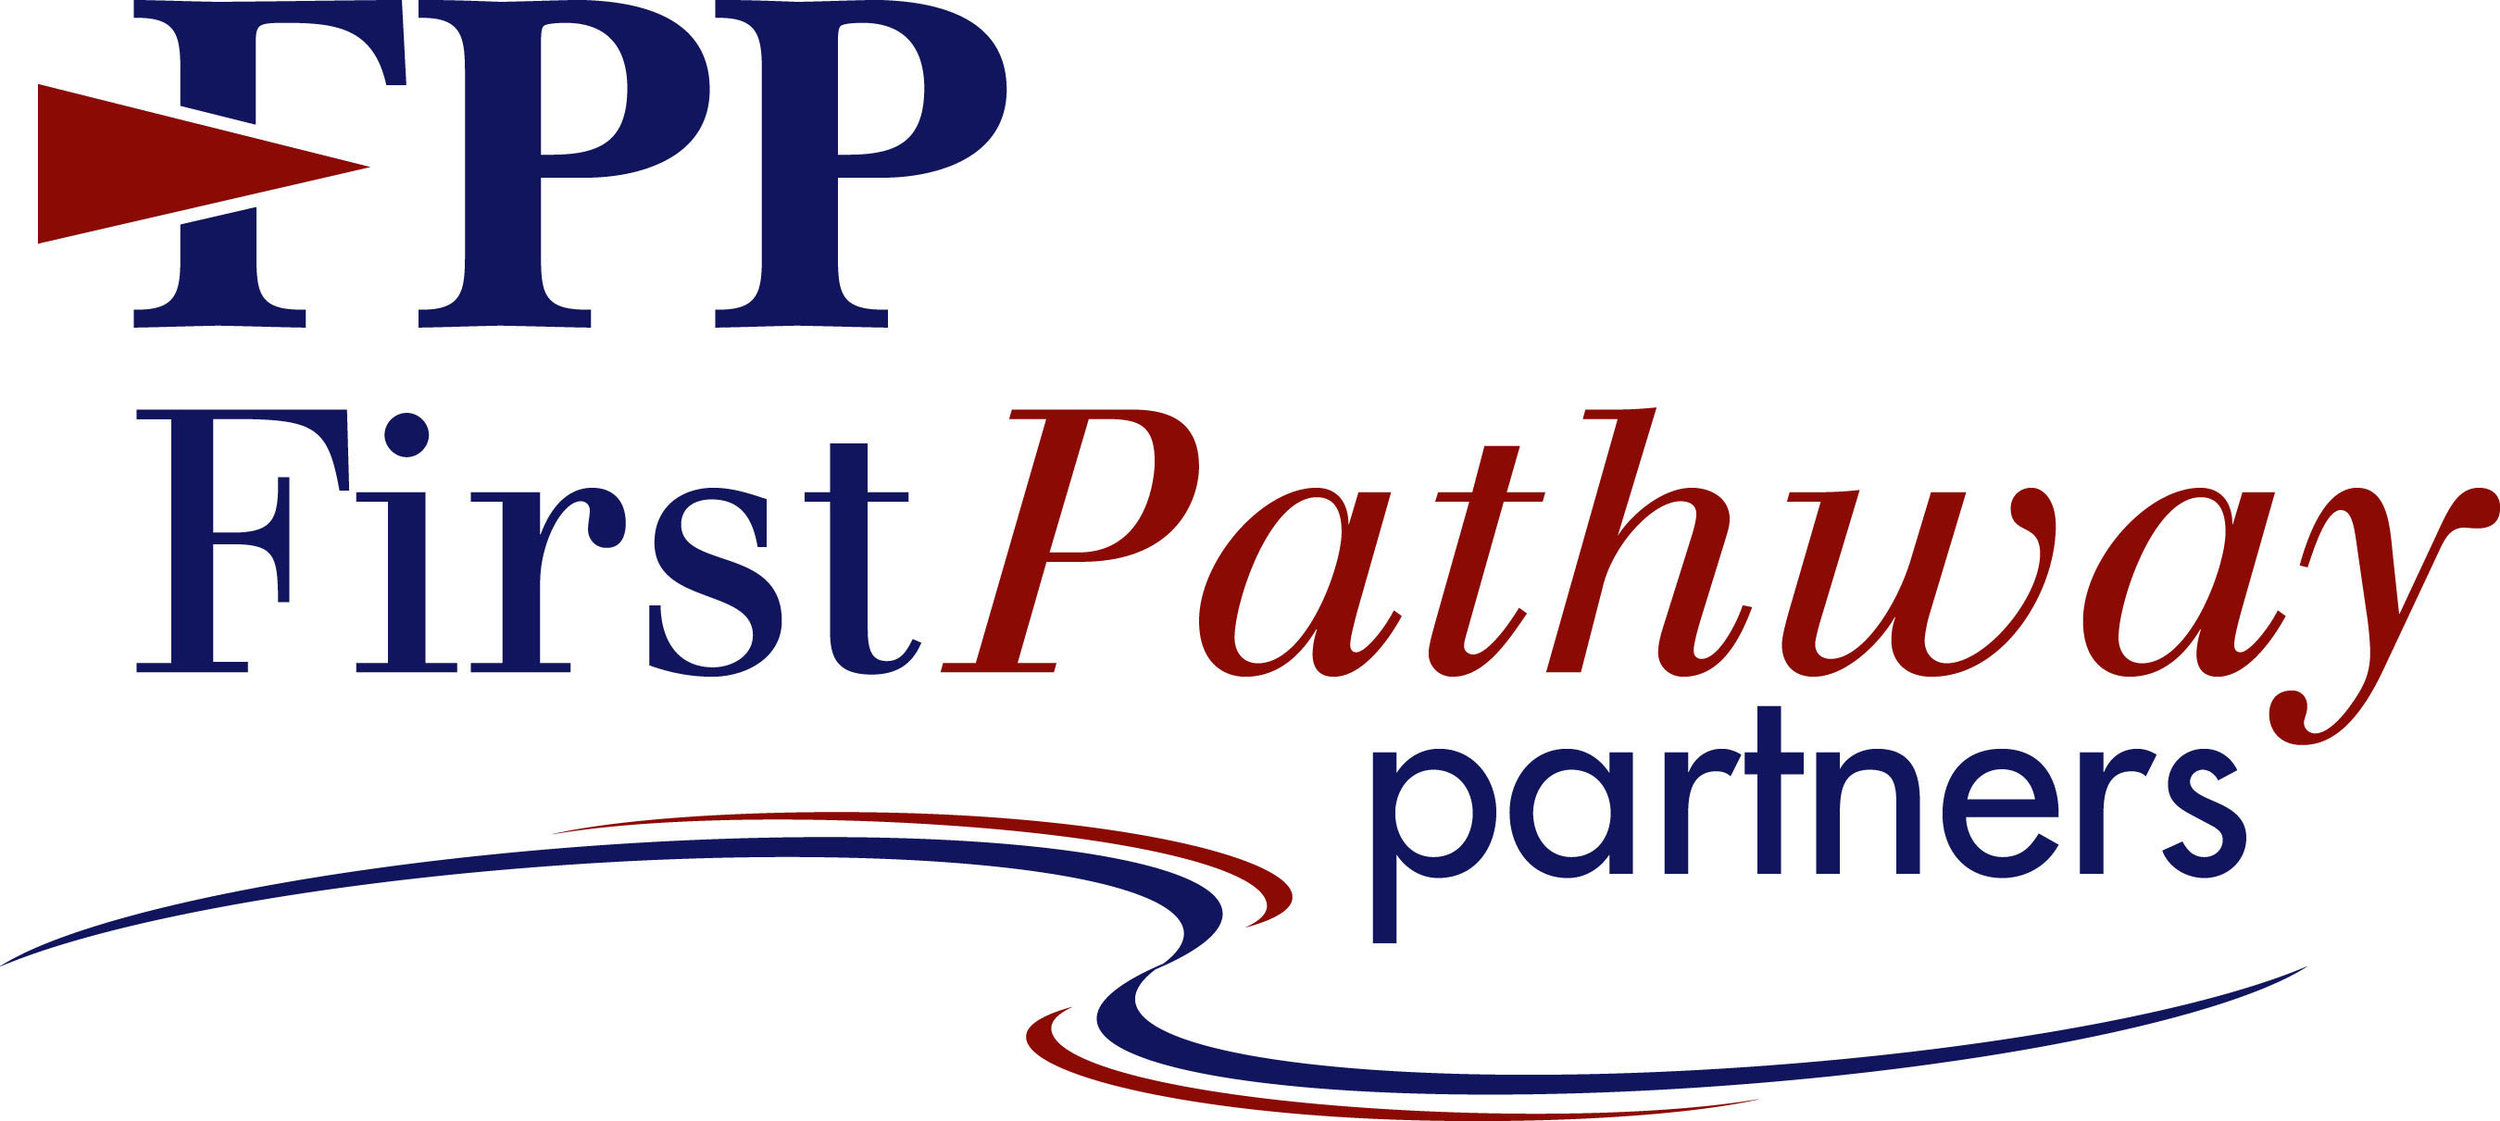 First Pathway Partners.jpeg